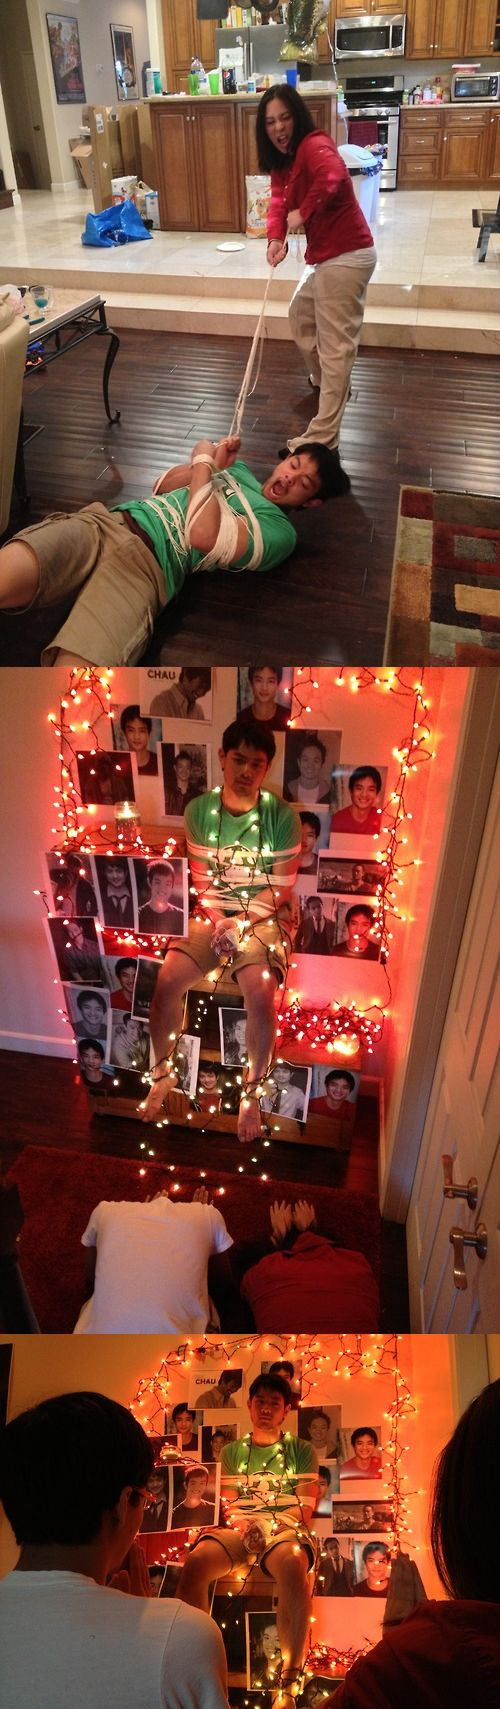 "GISHWHES 2013 | IMAGE - Create a shrine to an actor from a CW show. Pay homage to it. > avengingsassydestiel: We just made him into an actual shrine. He has the best ""FML"" face."